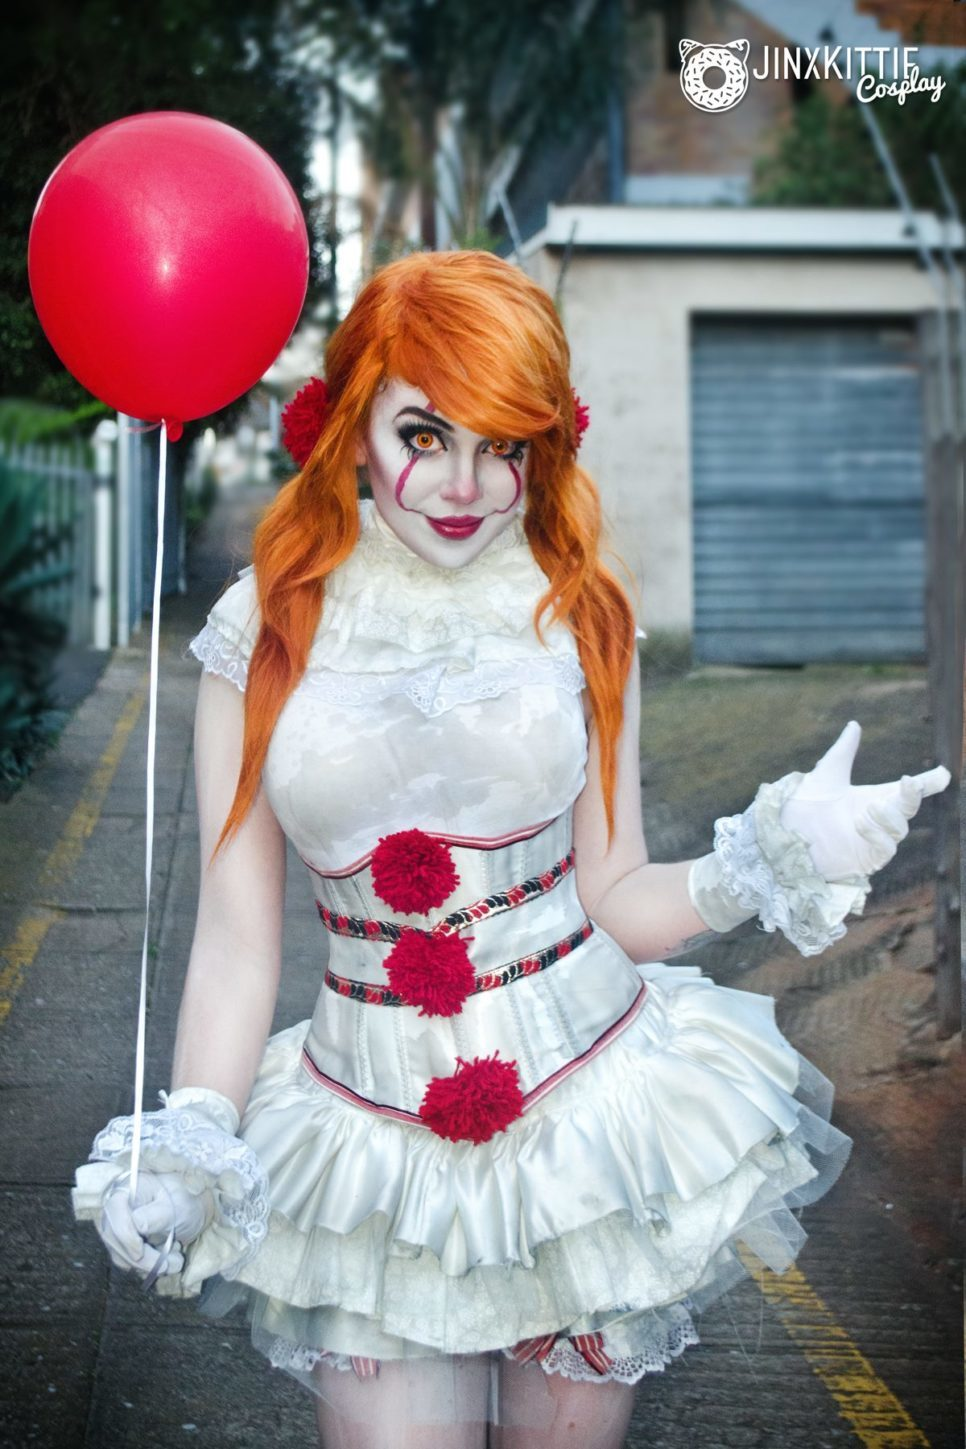 Pennywise z It